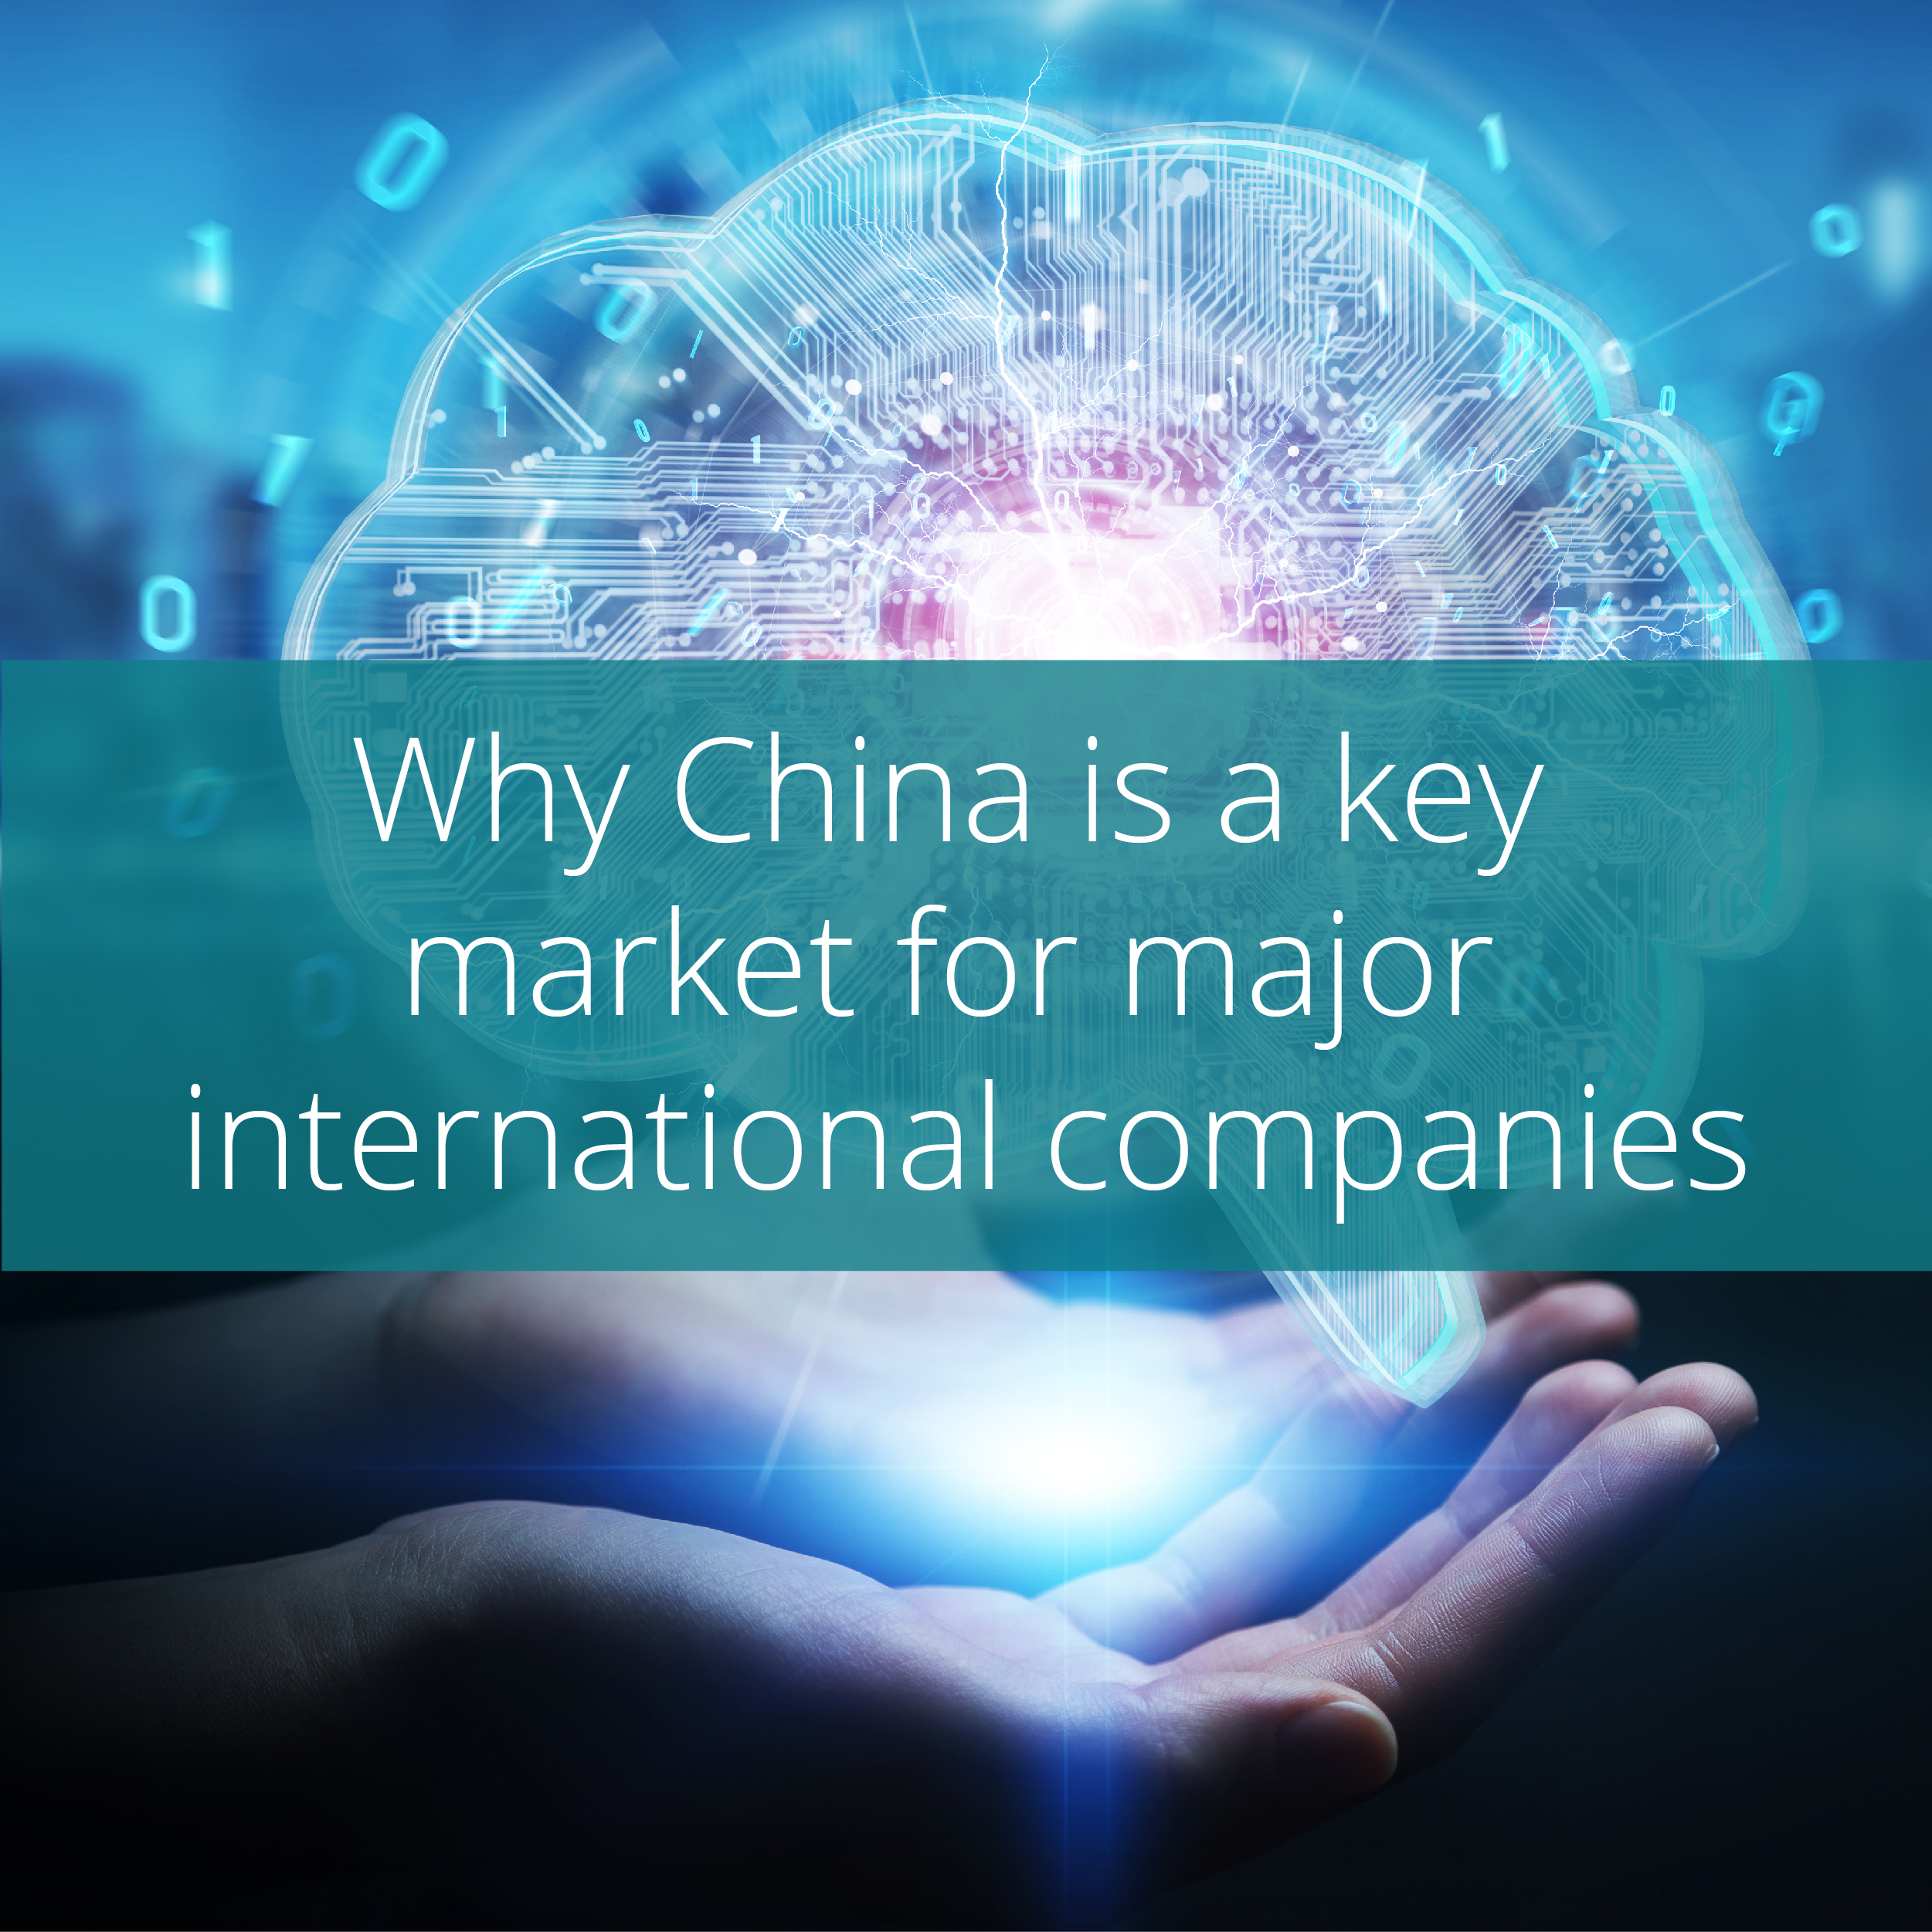 Thumbnail for Why China is a key market for major international companies